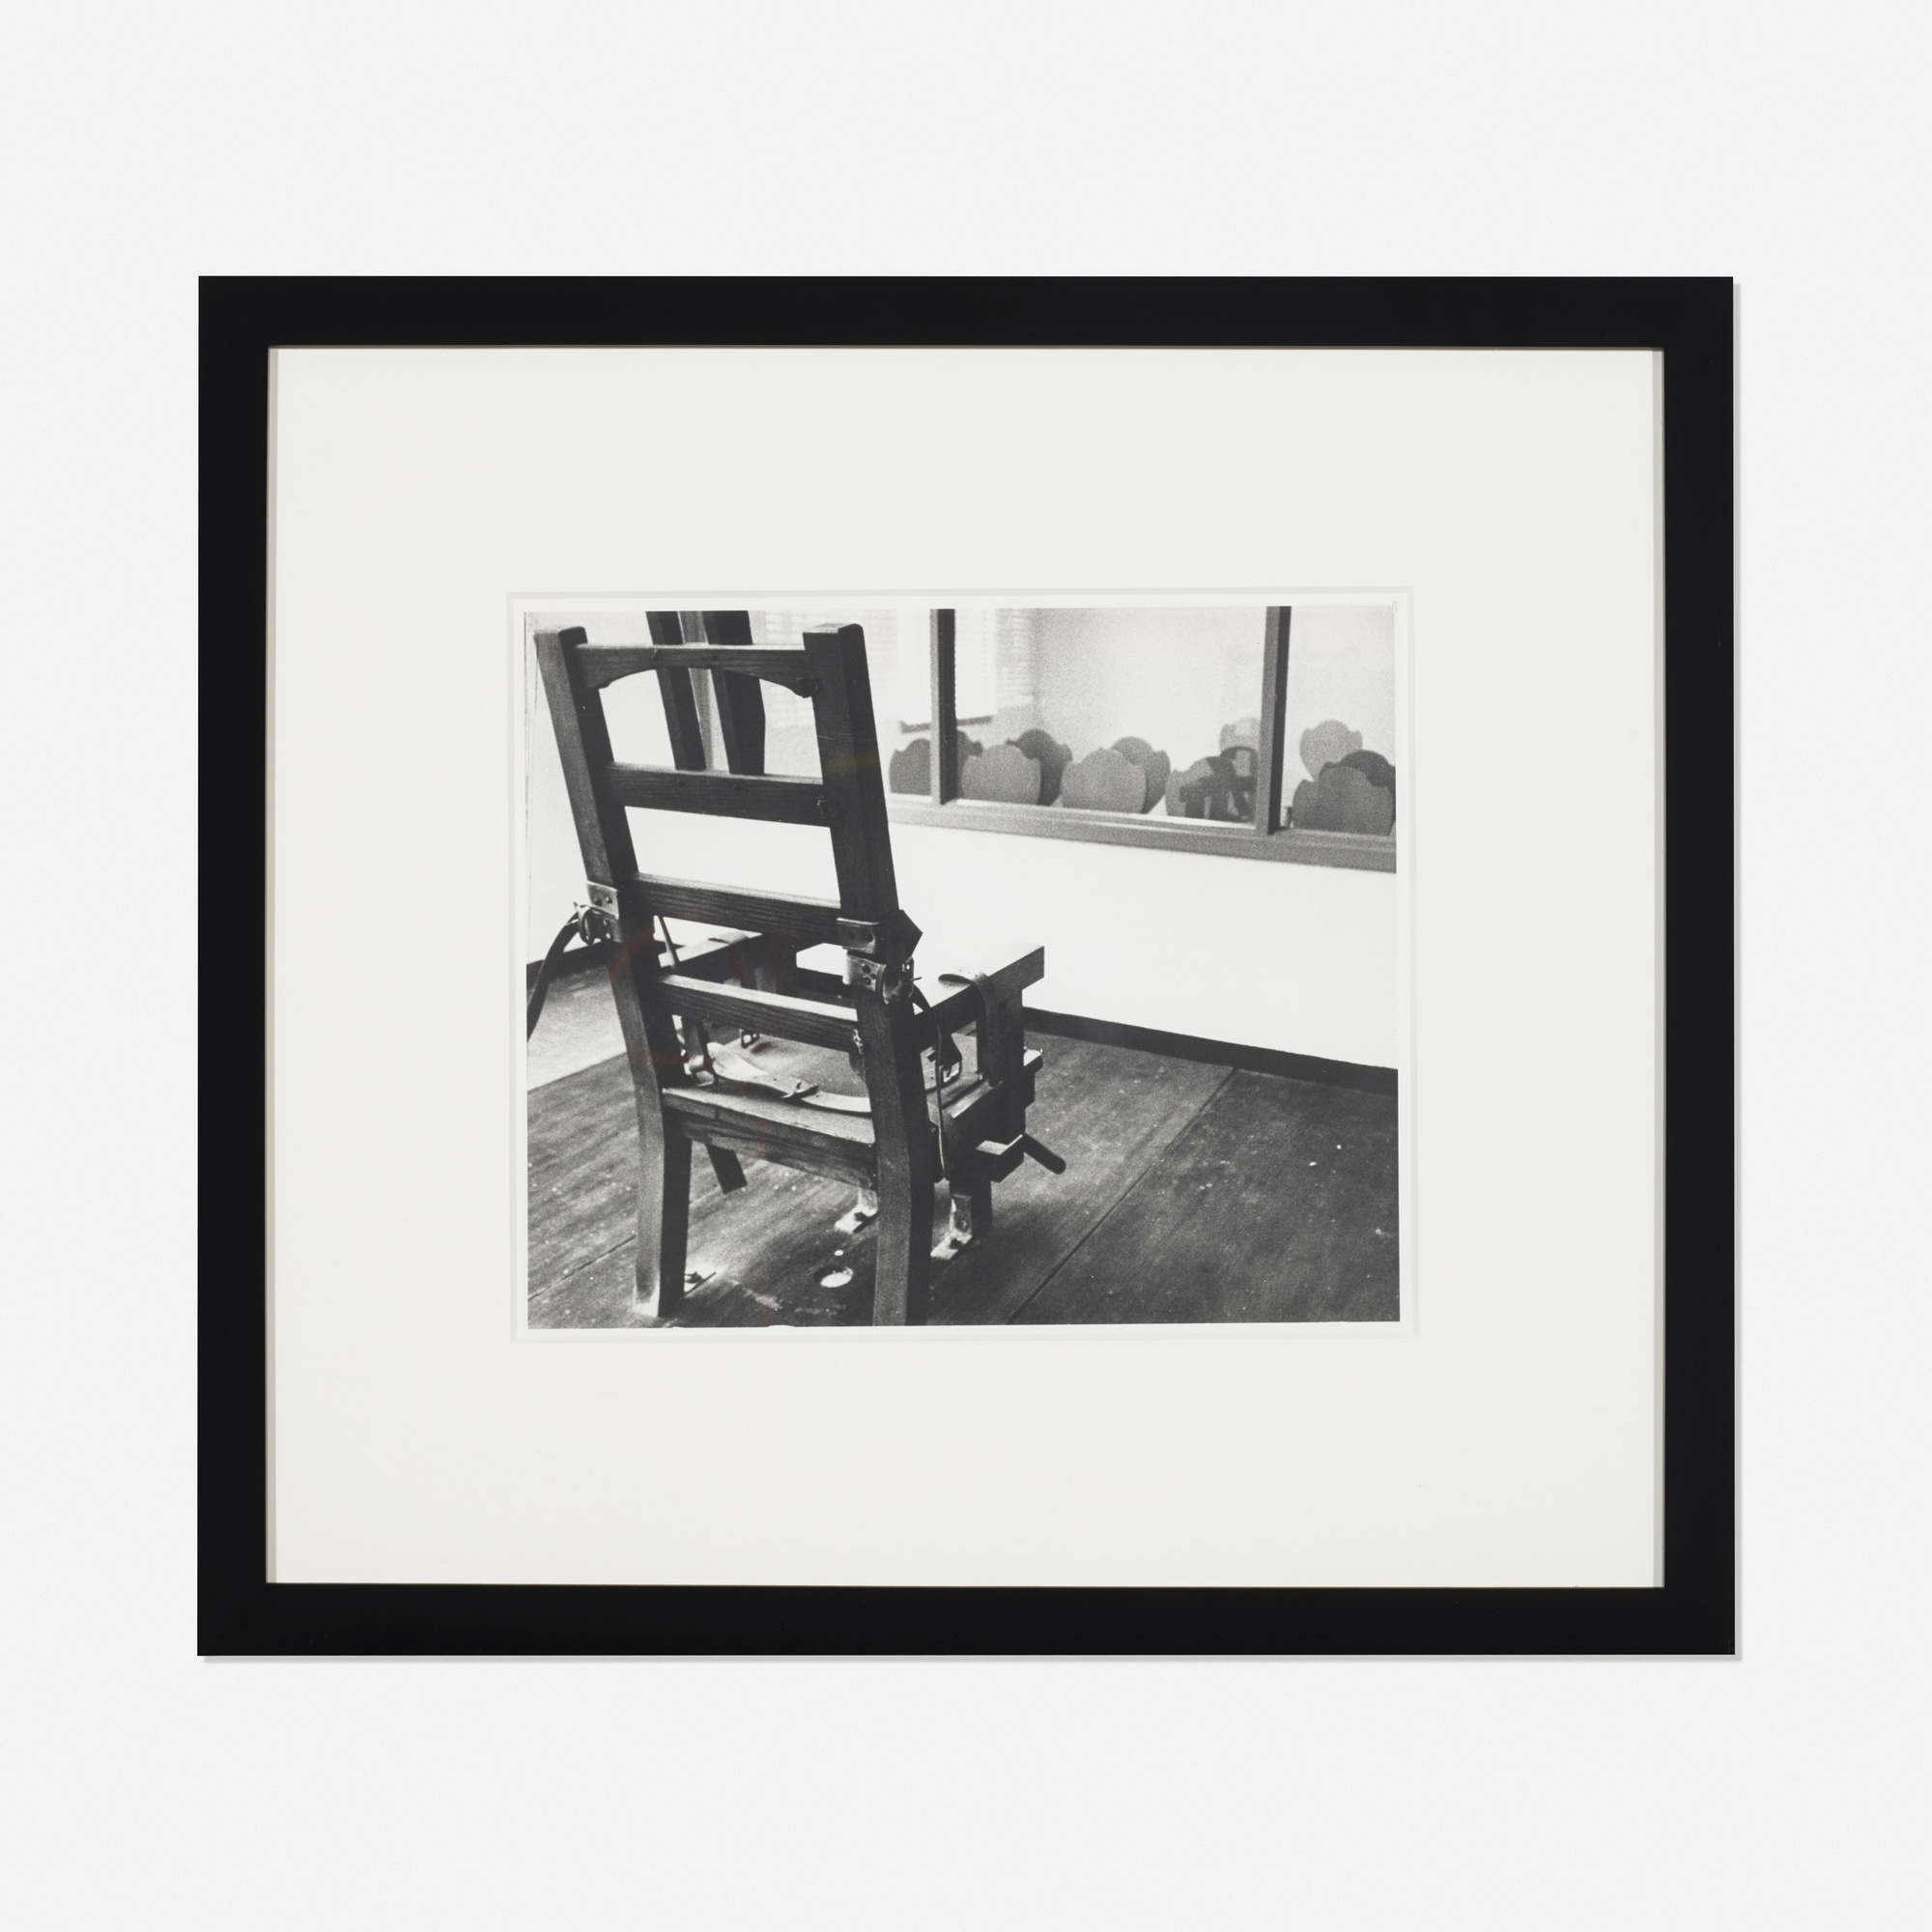 207: Andy Warhol / Untitled (Electric Chair) (1 of 2)